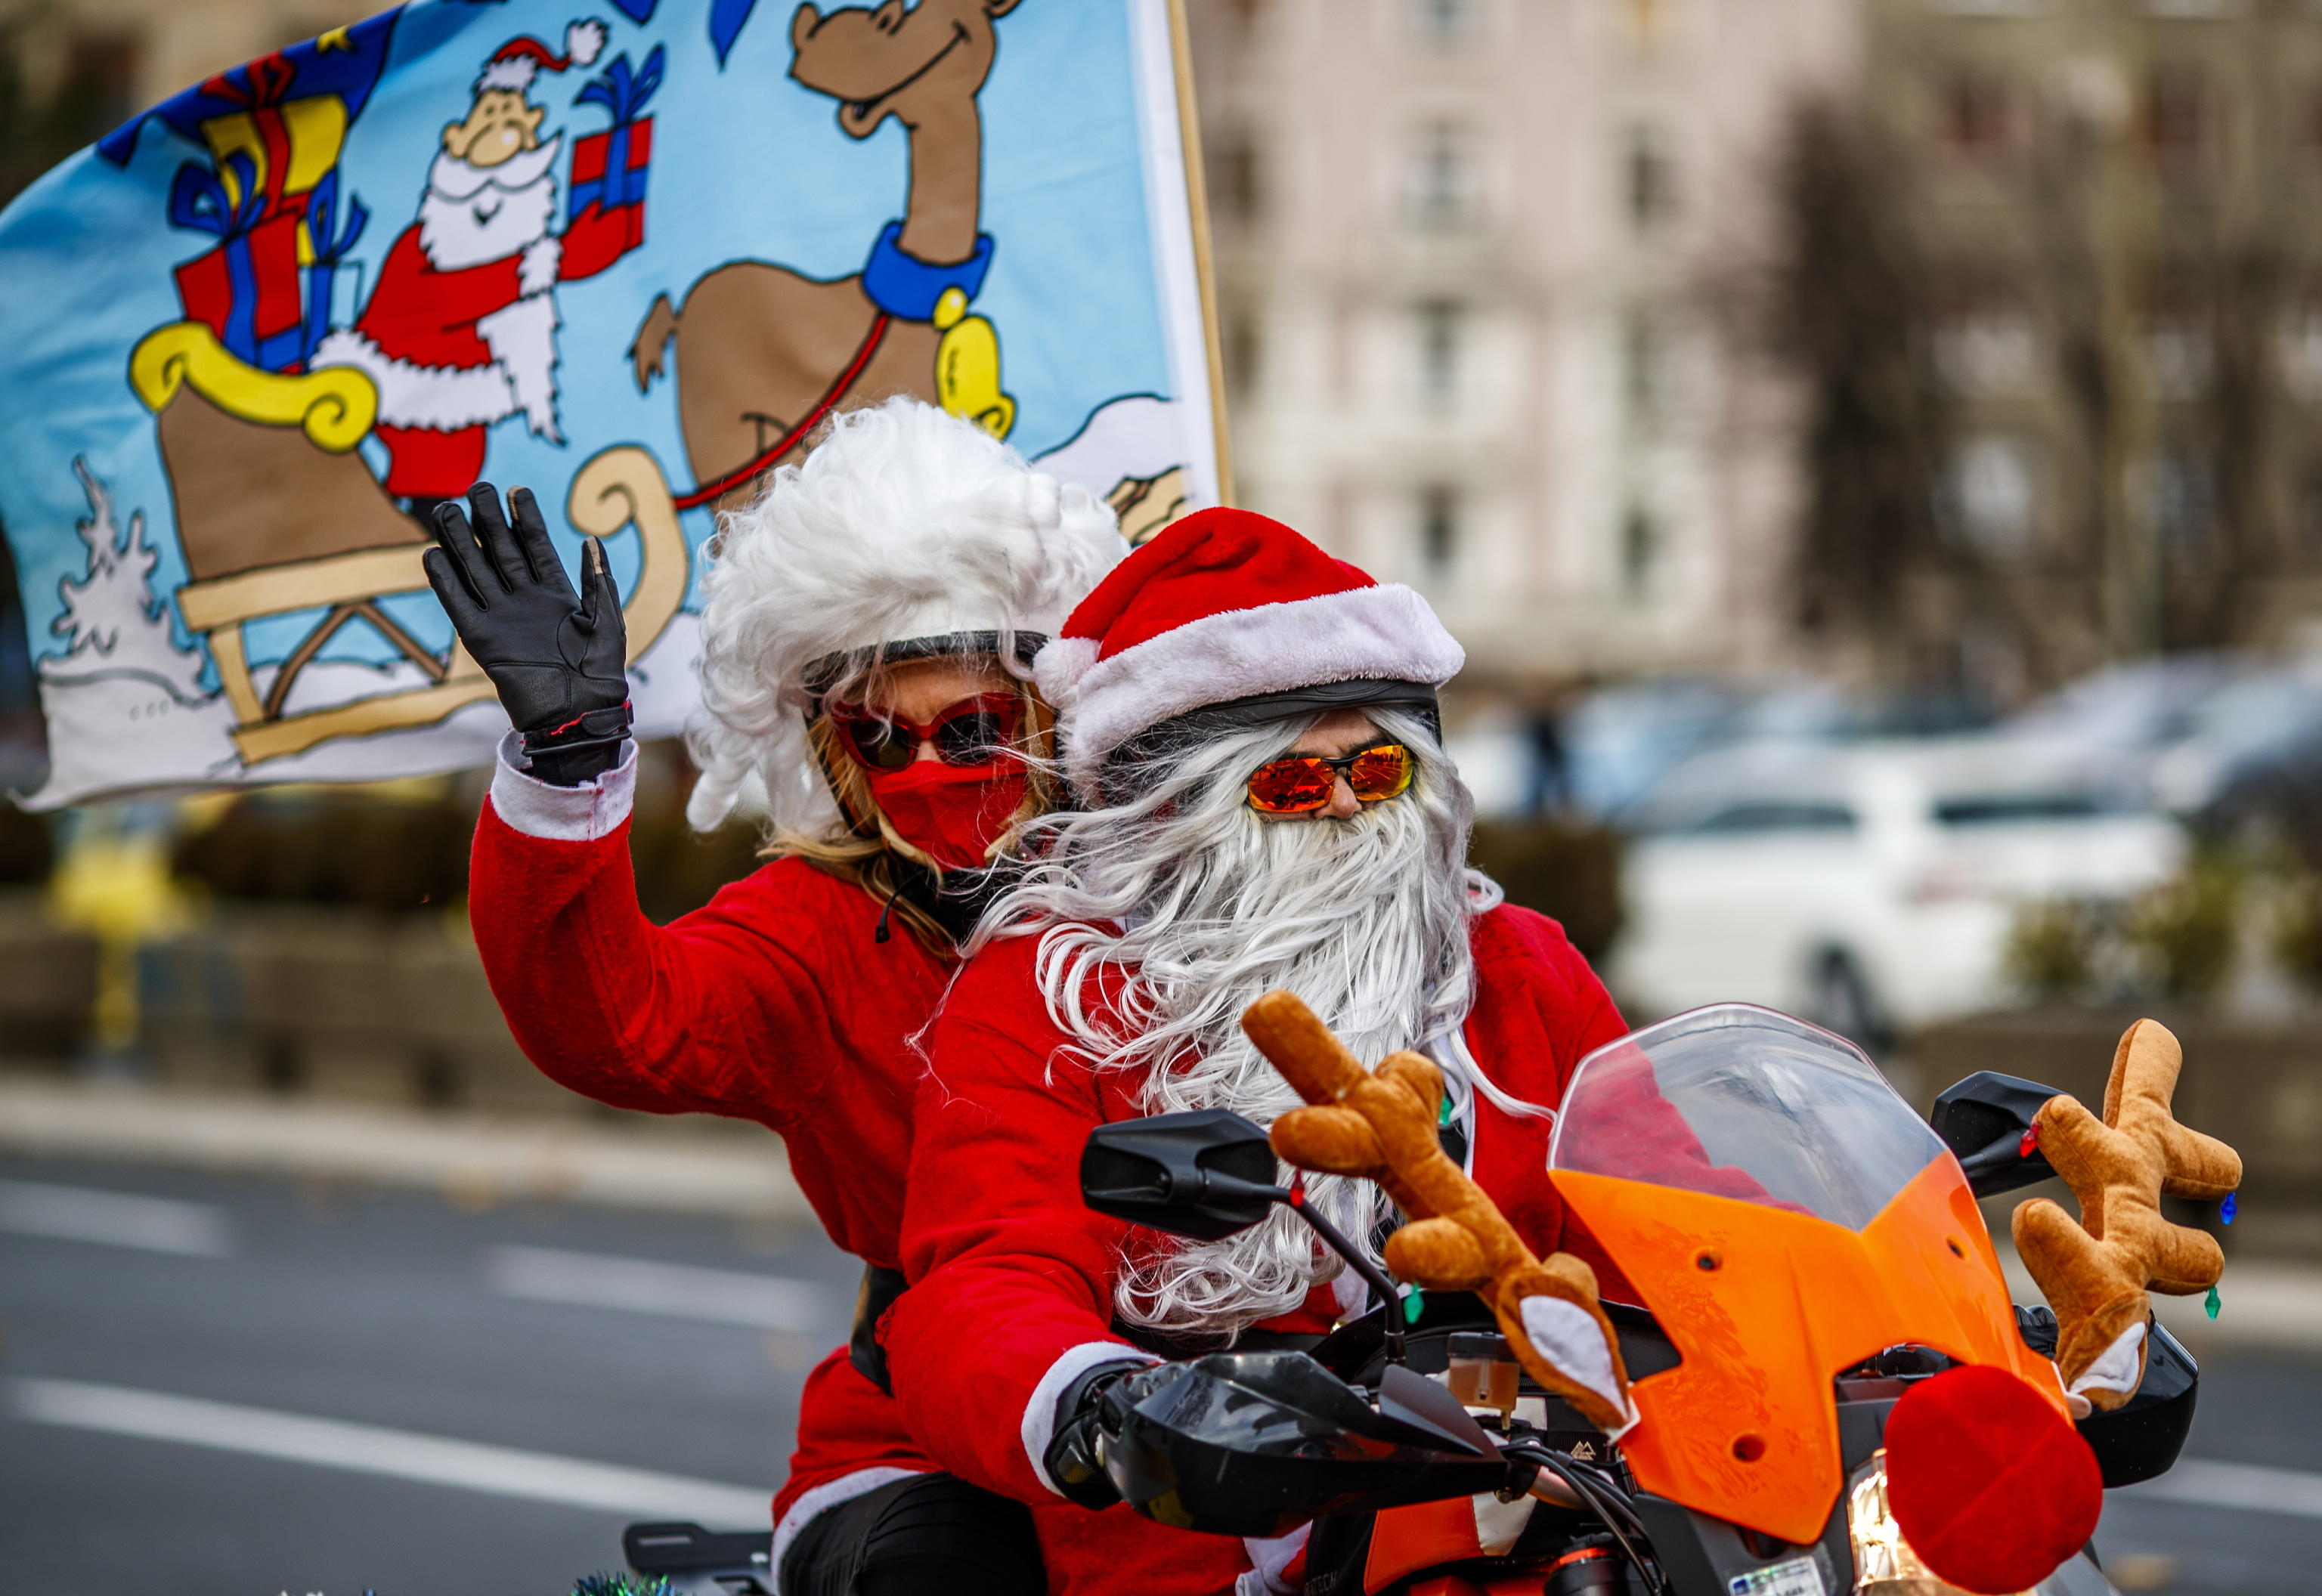 epa08084750 A Serbian motorcyclists dressed in Santa costume drive through the streets of the city center of Belgrade, Serbia, 21 December 2019. A group of Serbian motorcycle enthusiasts gathered in the Serbian capital for a joint ride to the bring Christmas gifts for underprivileged children.  EPA/SRDJAN SUKI